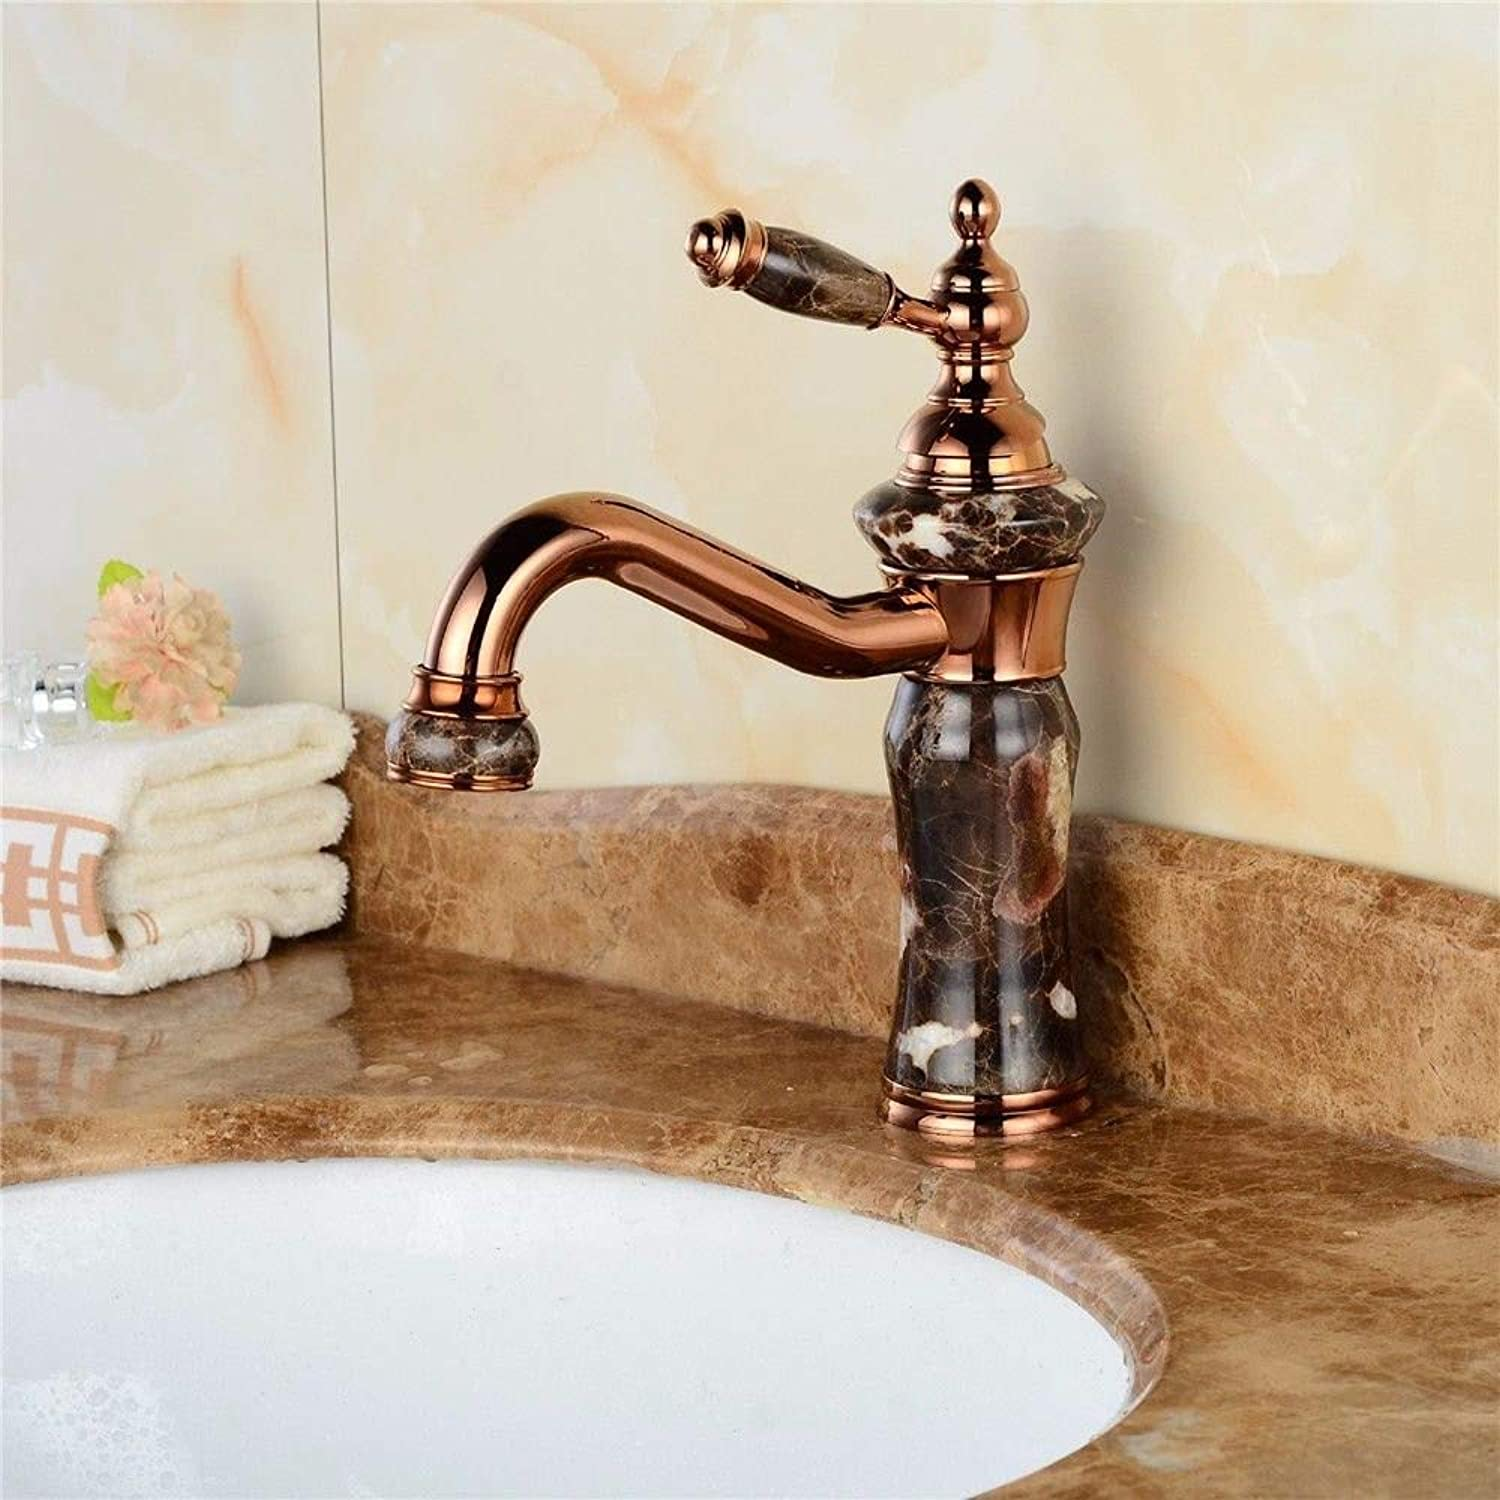 Modern simple copper hot and cold kitchen sink taps kitchen faucet Copper antique faucet antique gold-plated jade faucet marble basin hot and cold water faucet